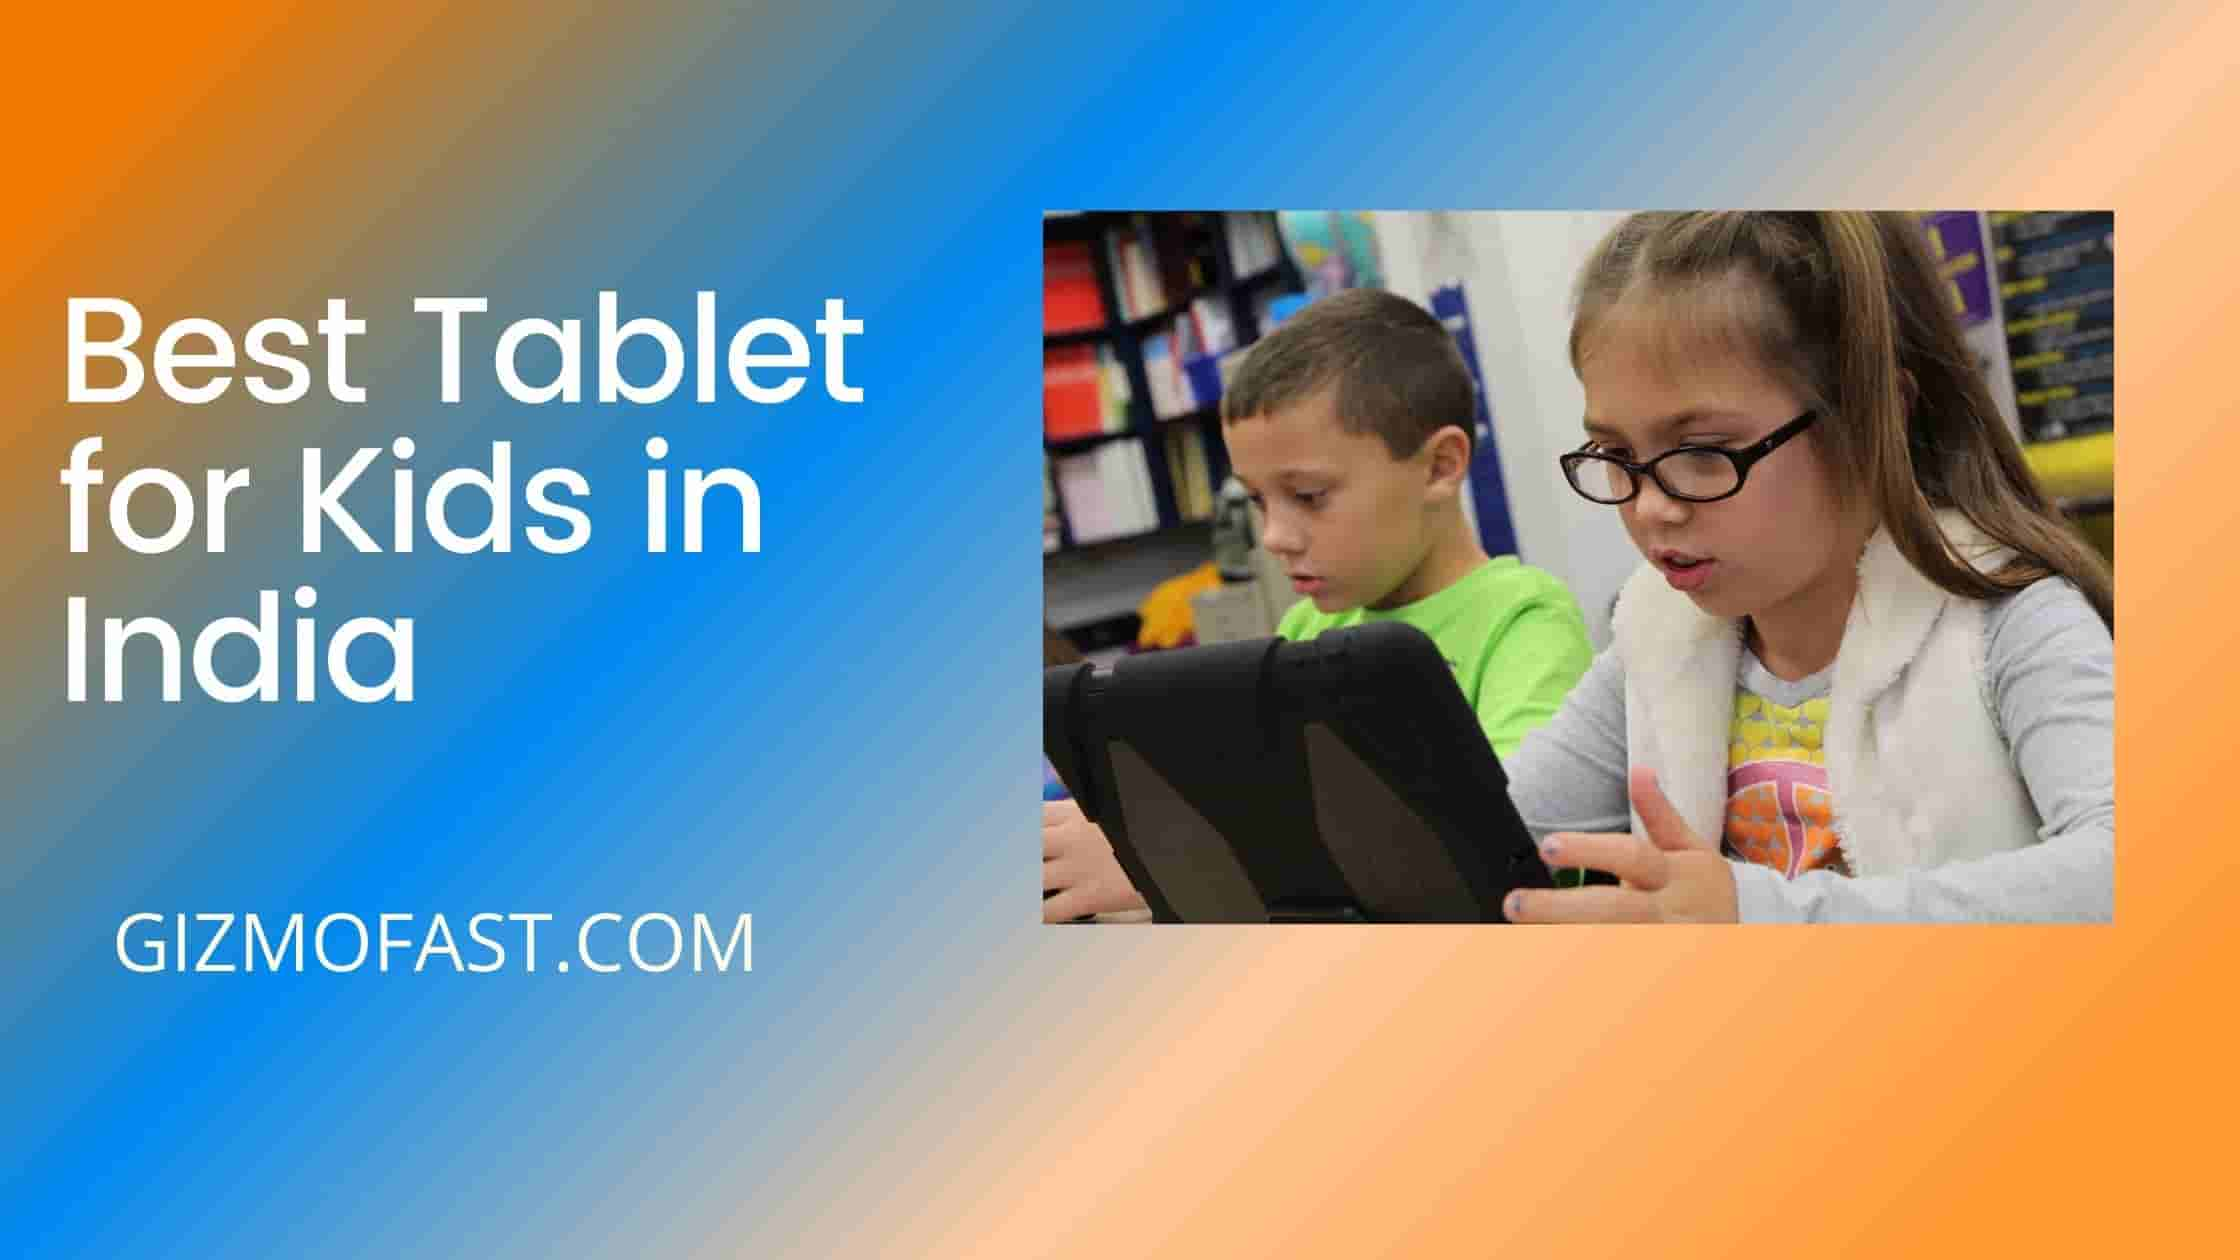 Best Tablet for kids in India